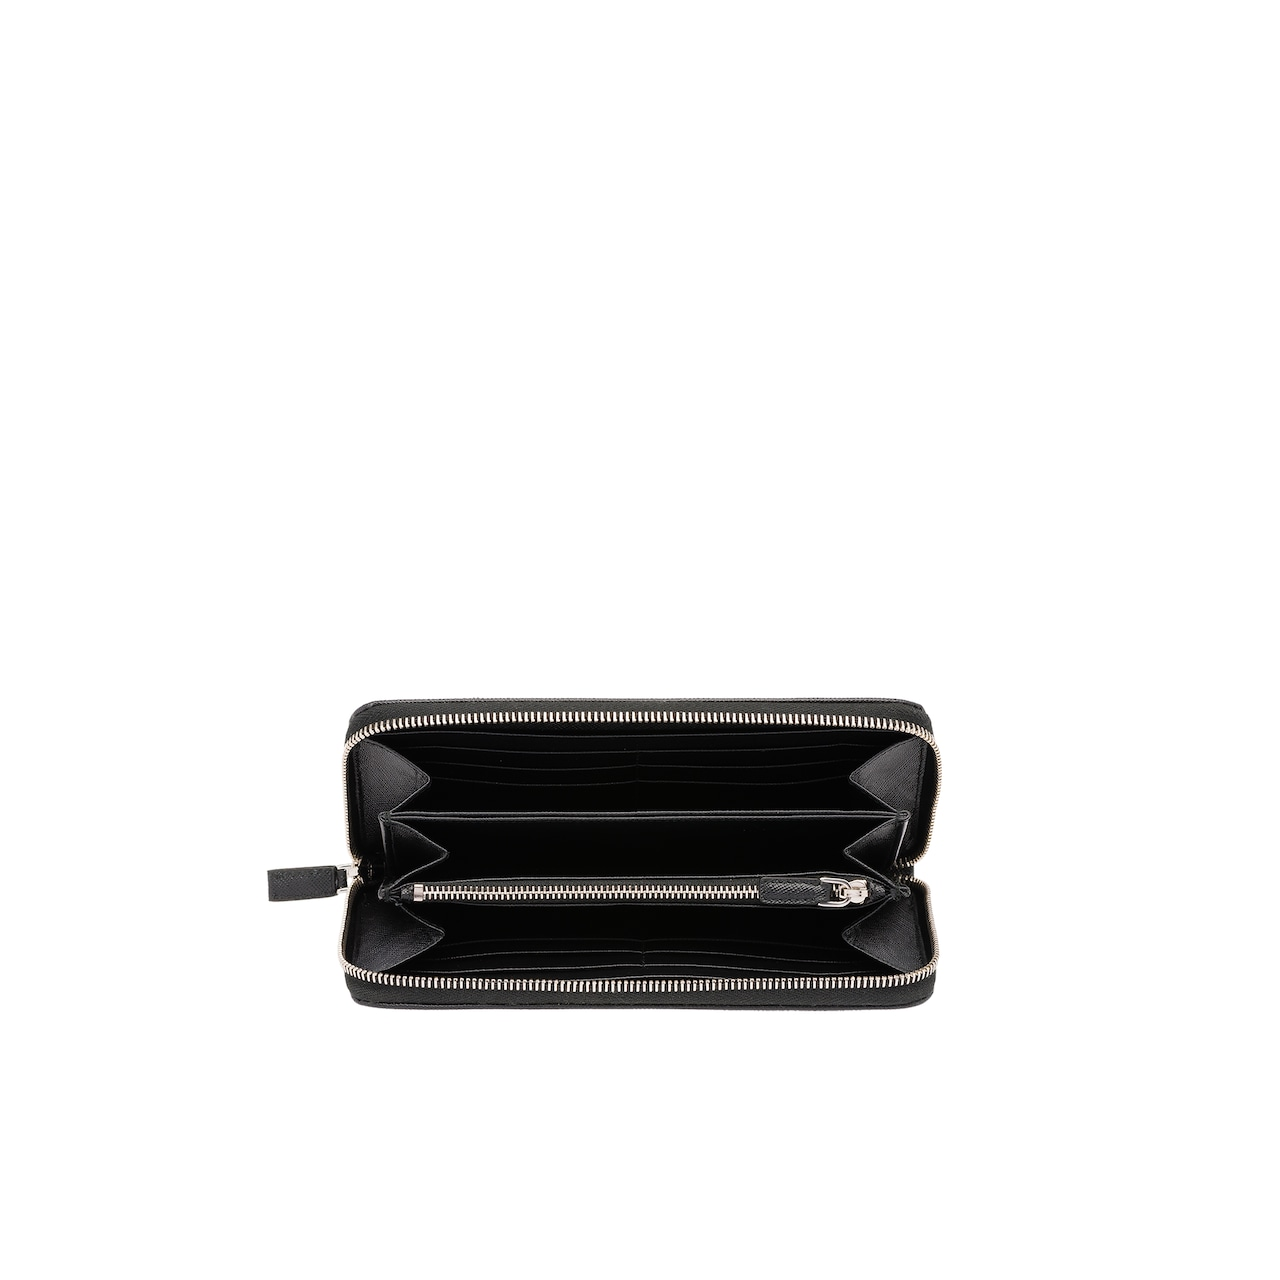 Prada Saffiano leather wallet 2